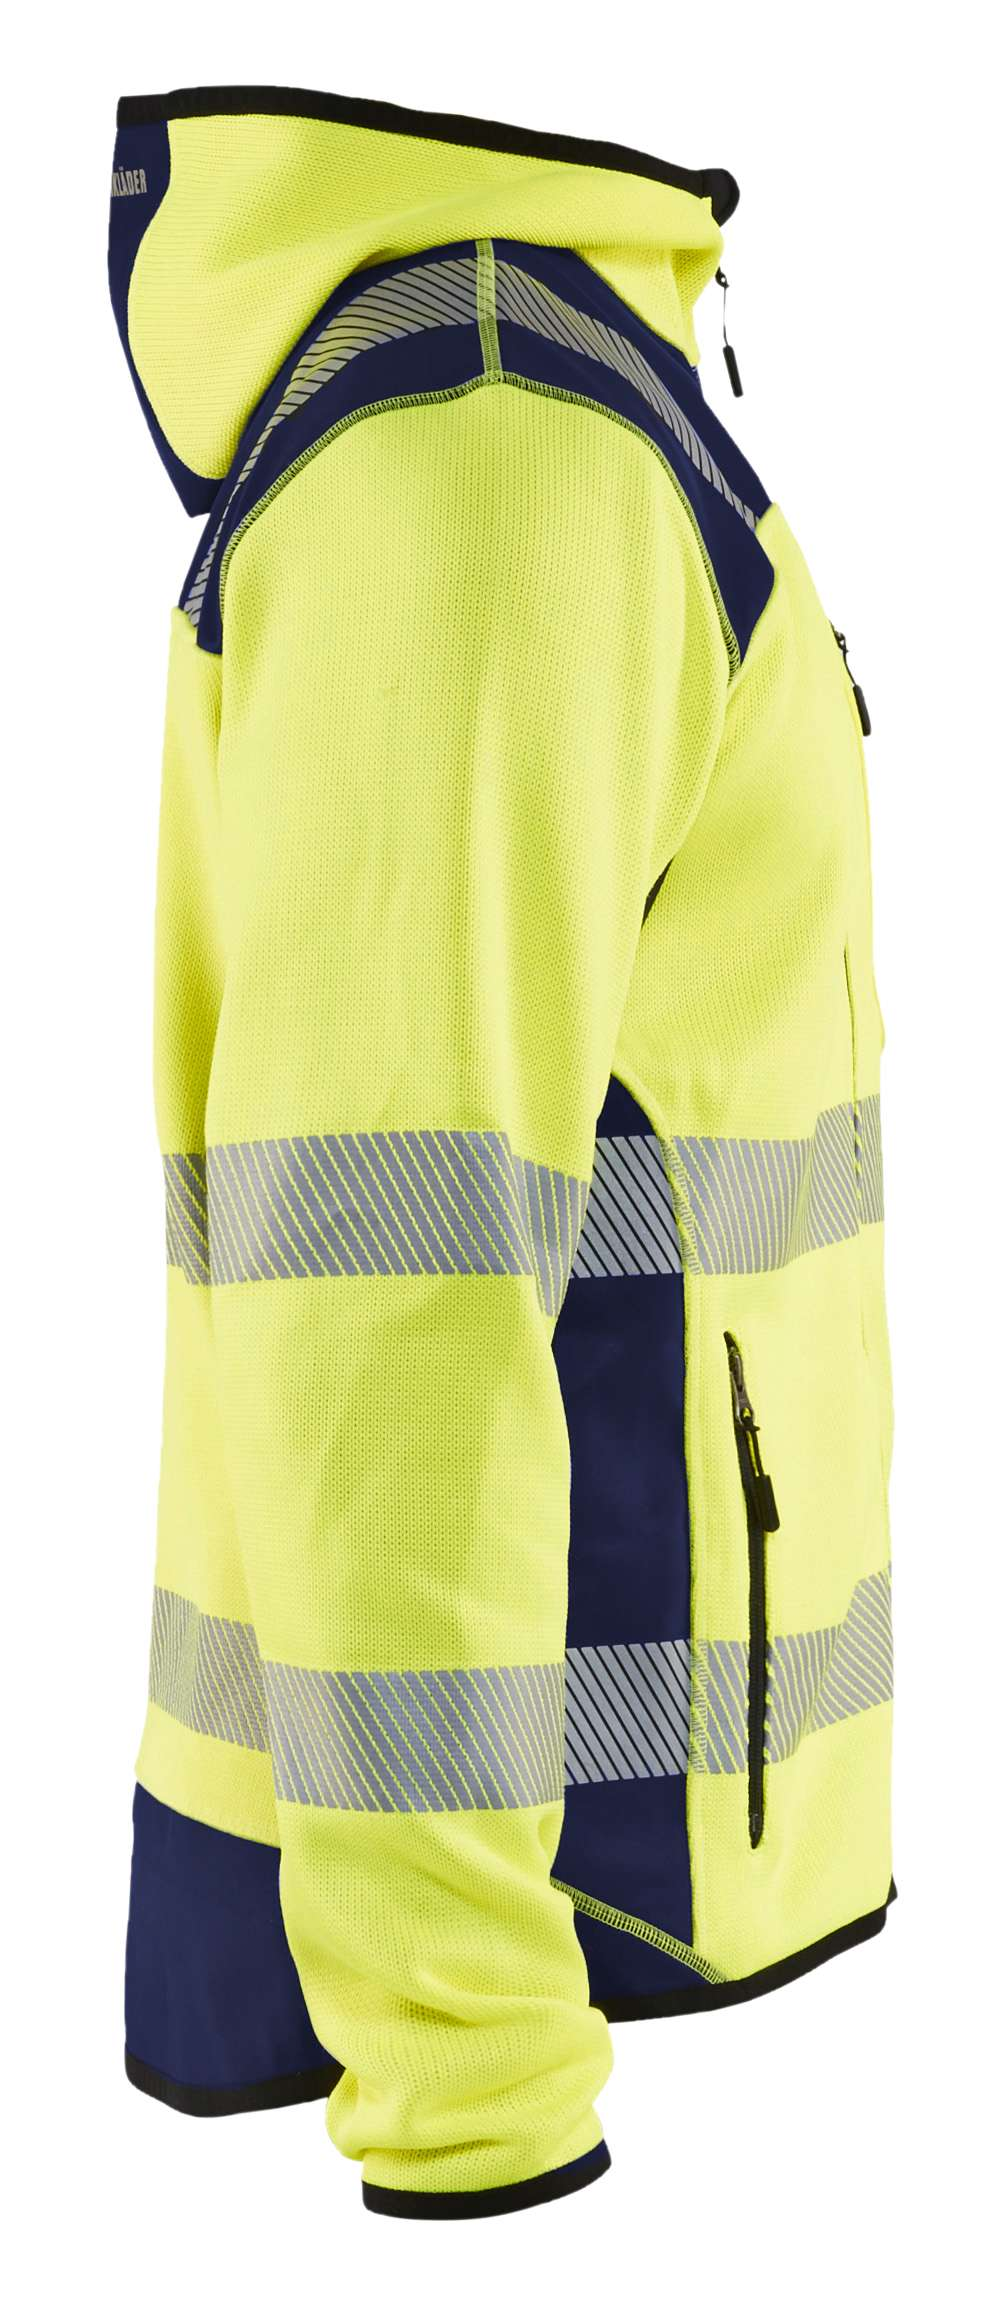 Blaklader Hooded vesten 49232120 High Vis fluo geel-marineblauw(3389)